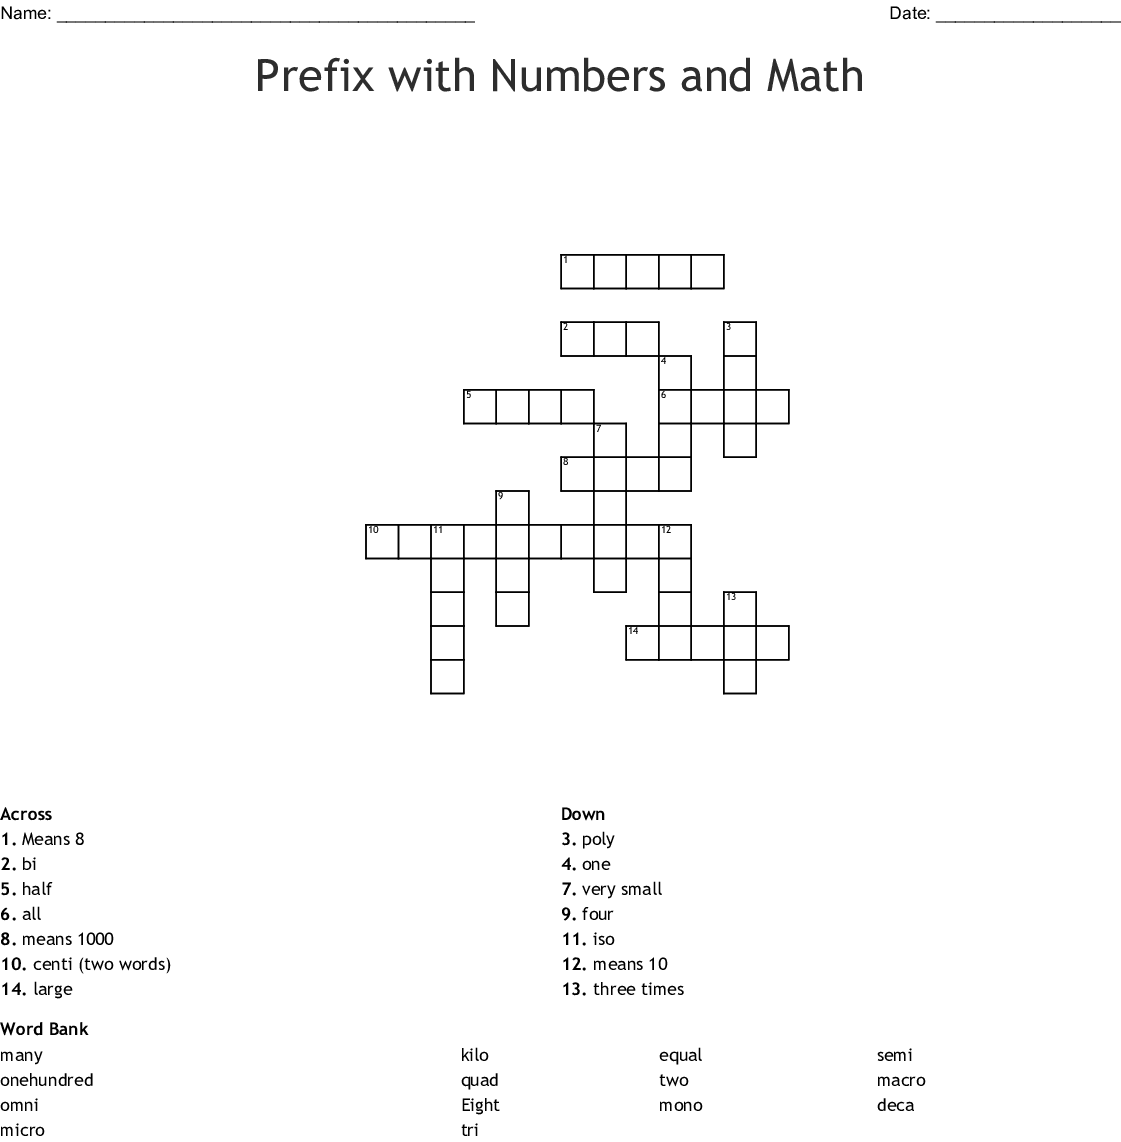 Prefix With Numbers And Math Crossword